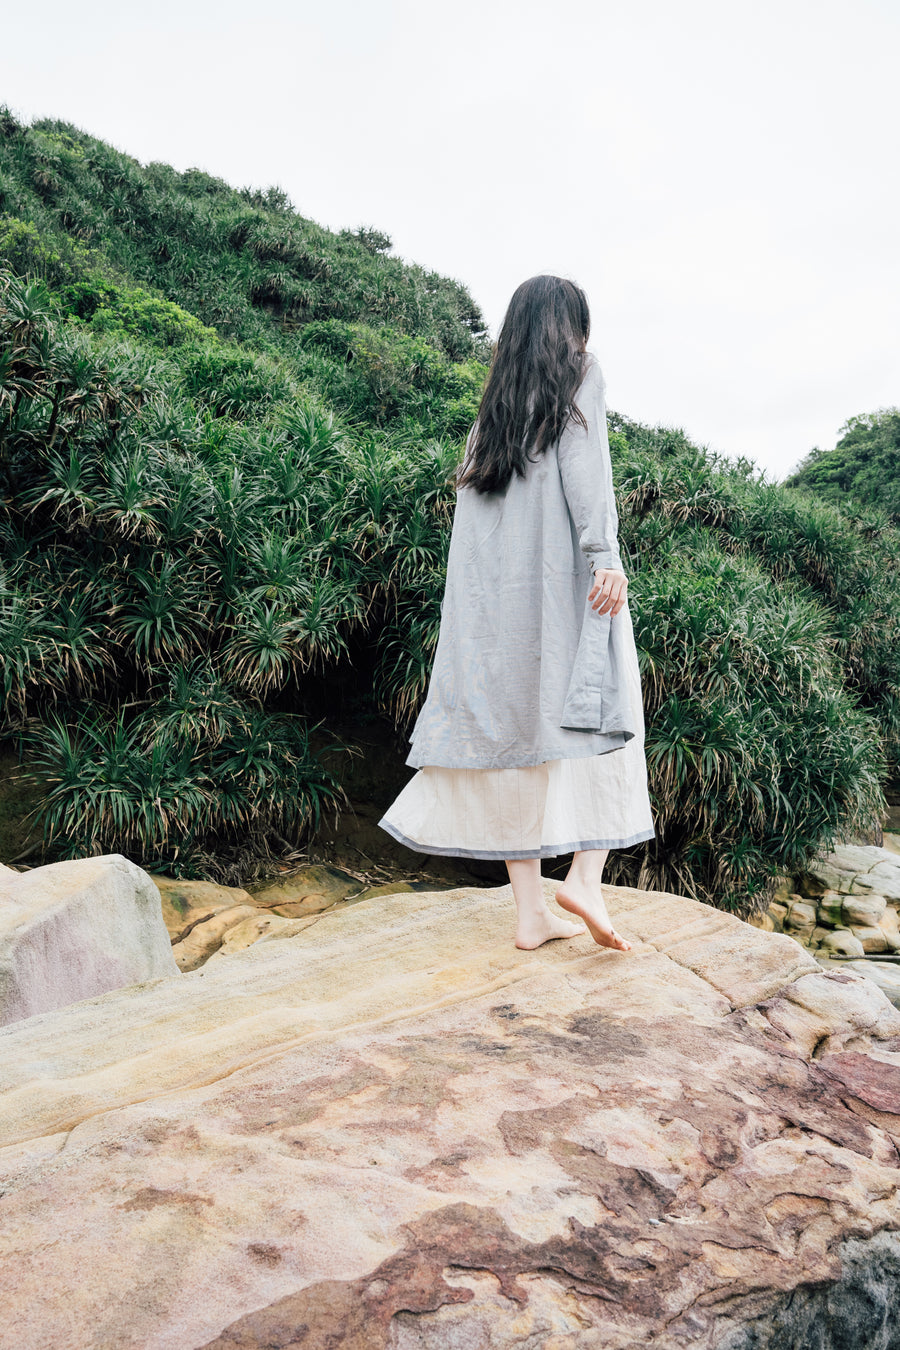 Grey and white jacket dress in Organic Cotton - Ethical made fashion - onlyethikal